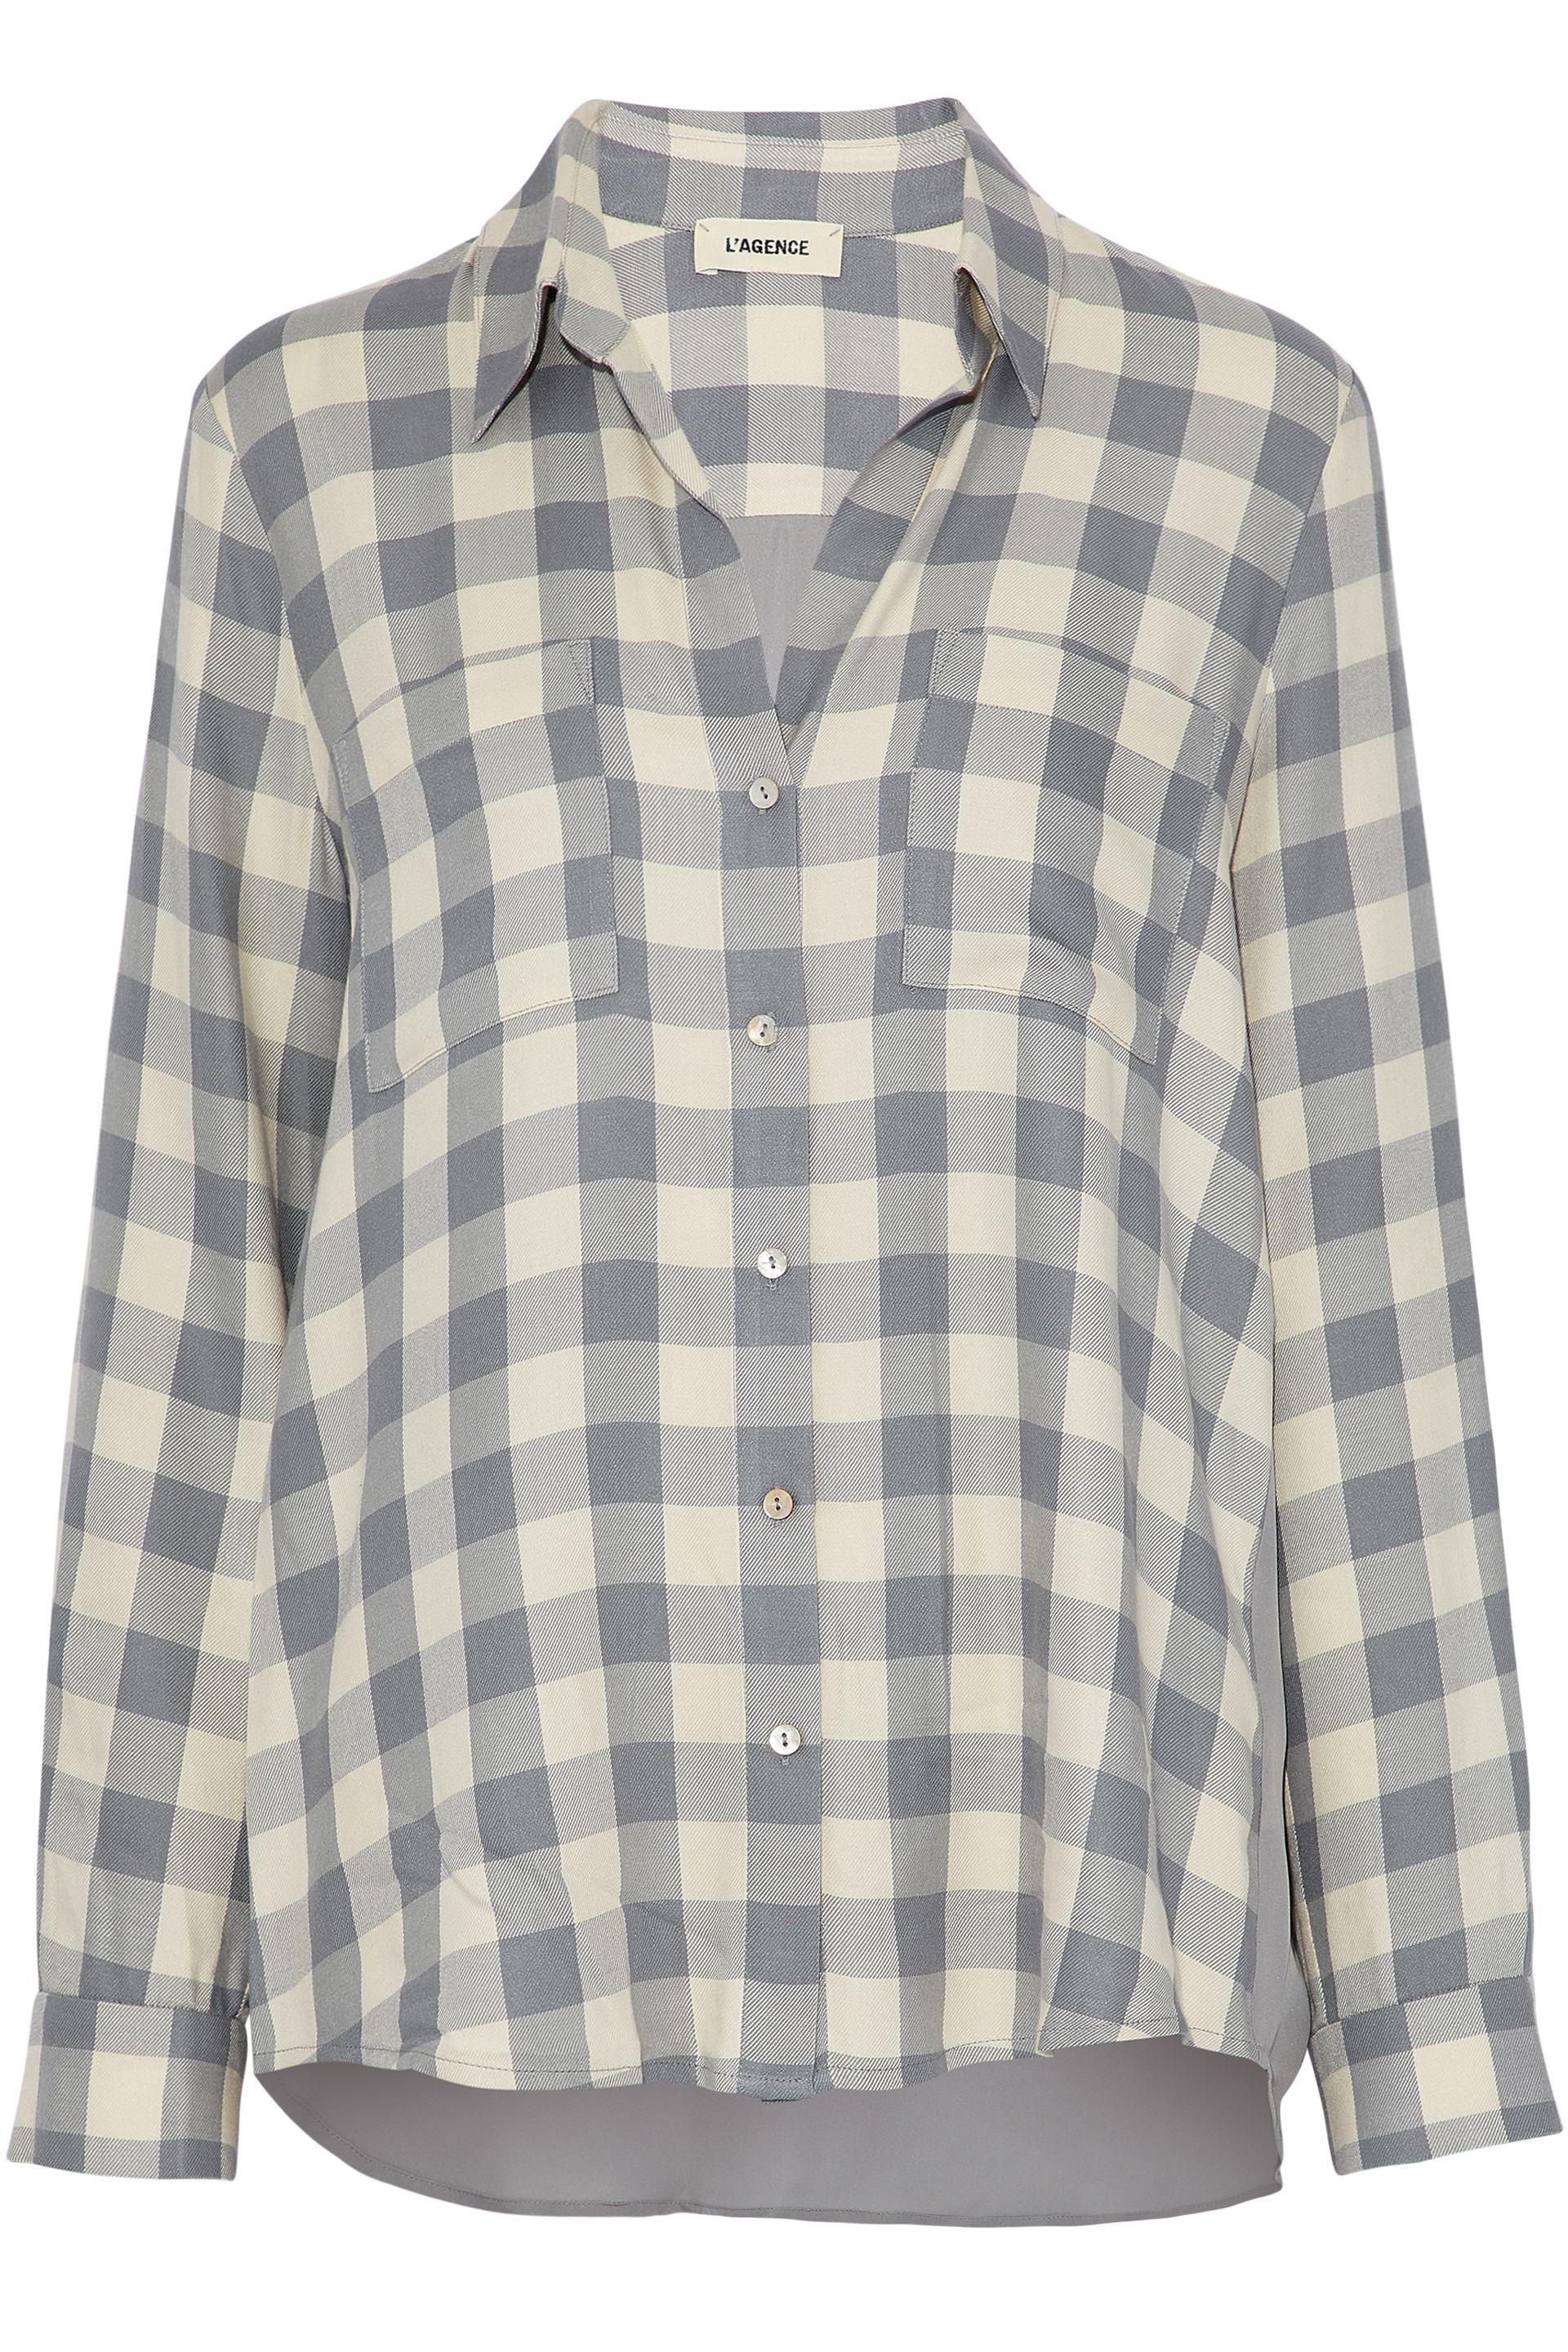 Lagence Woman Silk Crepe De Chine-paneled Gingham Flannel Shirt Light Gray Size L L'agence Many Kinds Of Cheap Online Fake Sale Online Buy Cheap For Cheap Discount 2018 New Nu9CPzqvNn